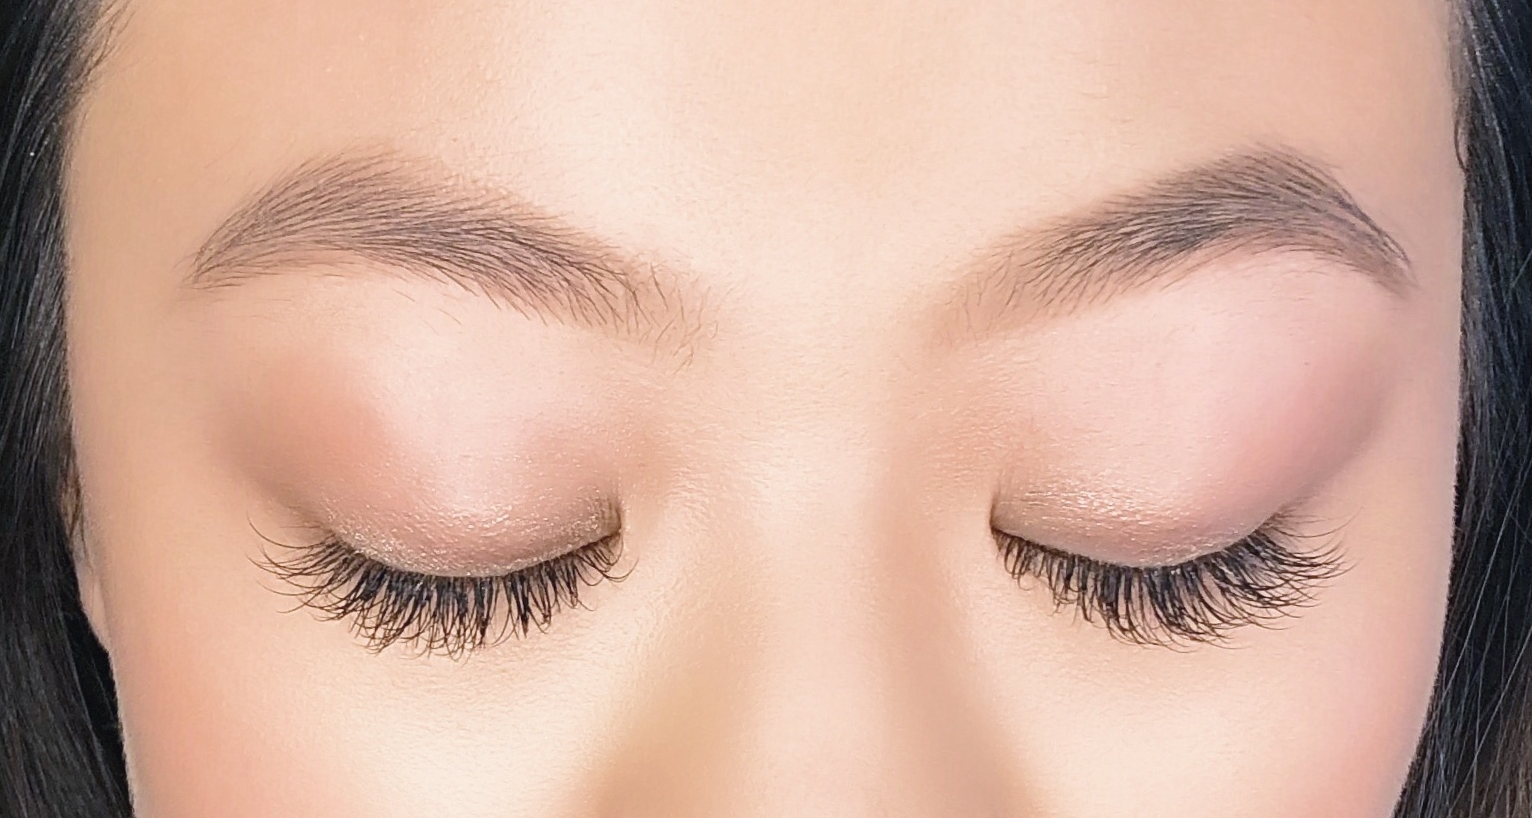 Lash extensions in Berkeley, CA